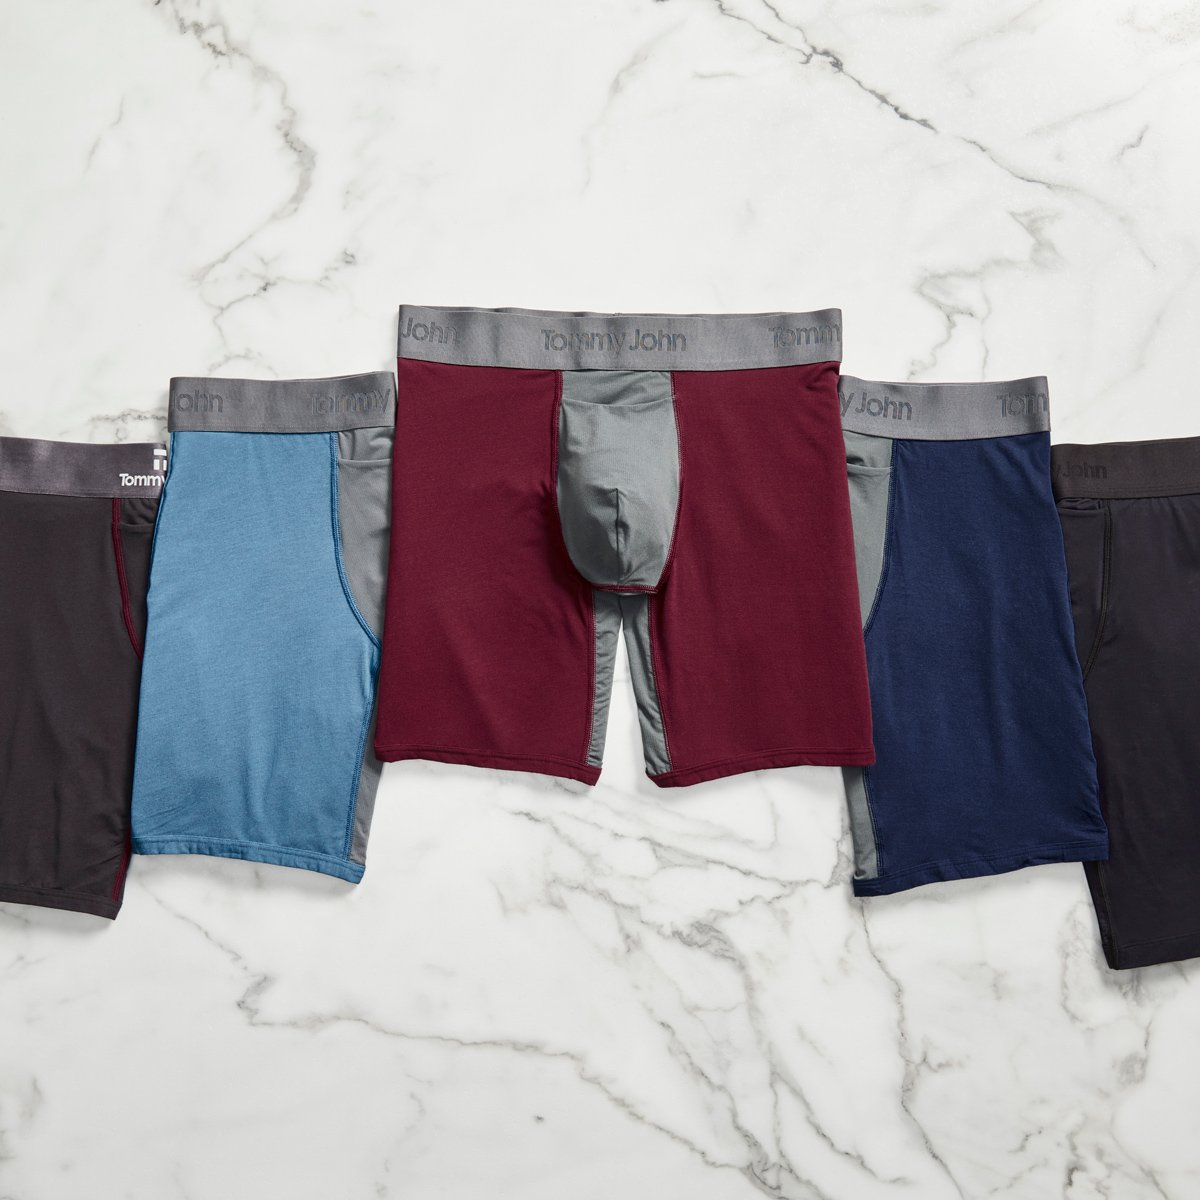 We've got new colors on the block, and there's no time to waist. > https://t.co/UC24KNQrP8 https://t.co/HVzrf30qm8